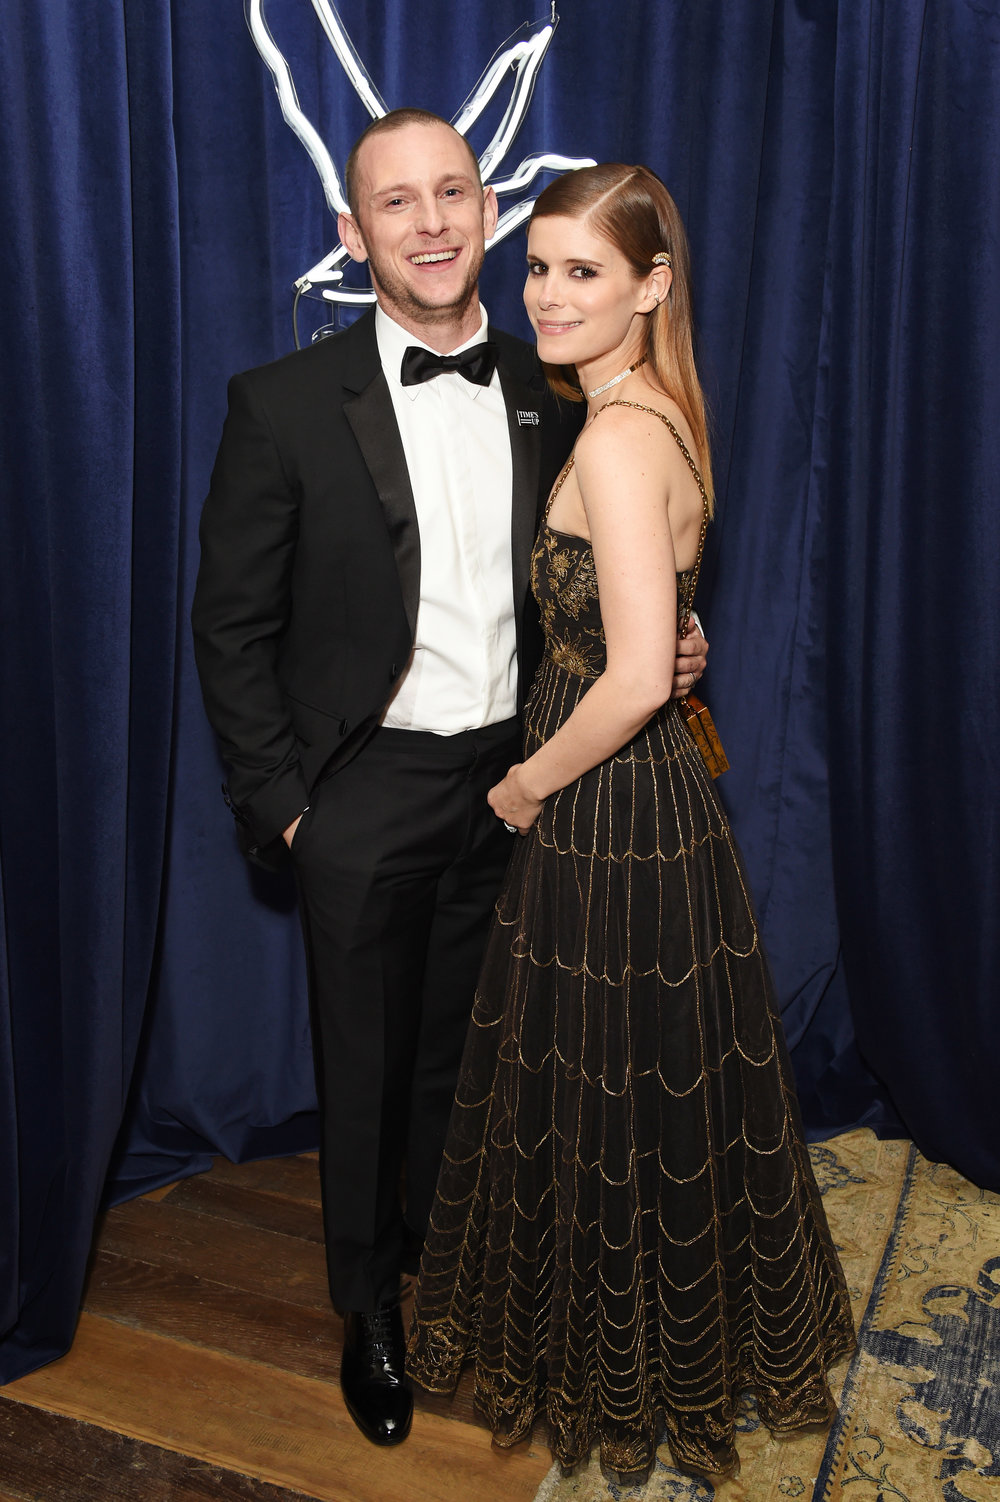 EatxAz6r2tksk7i4fiNq5rowESV0Dqzh_Jamie_Bell_and_Kate_Mara_DMB-GREY_GOOSE_BAFTA_AFTERPARTY027.jpg